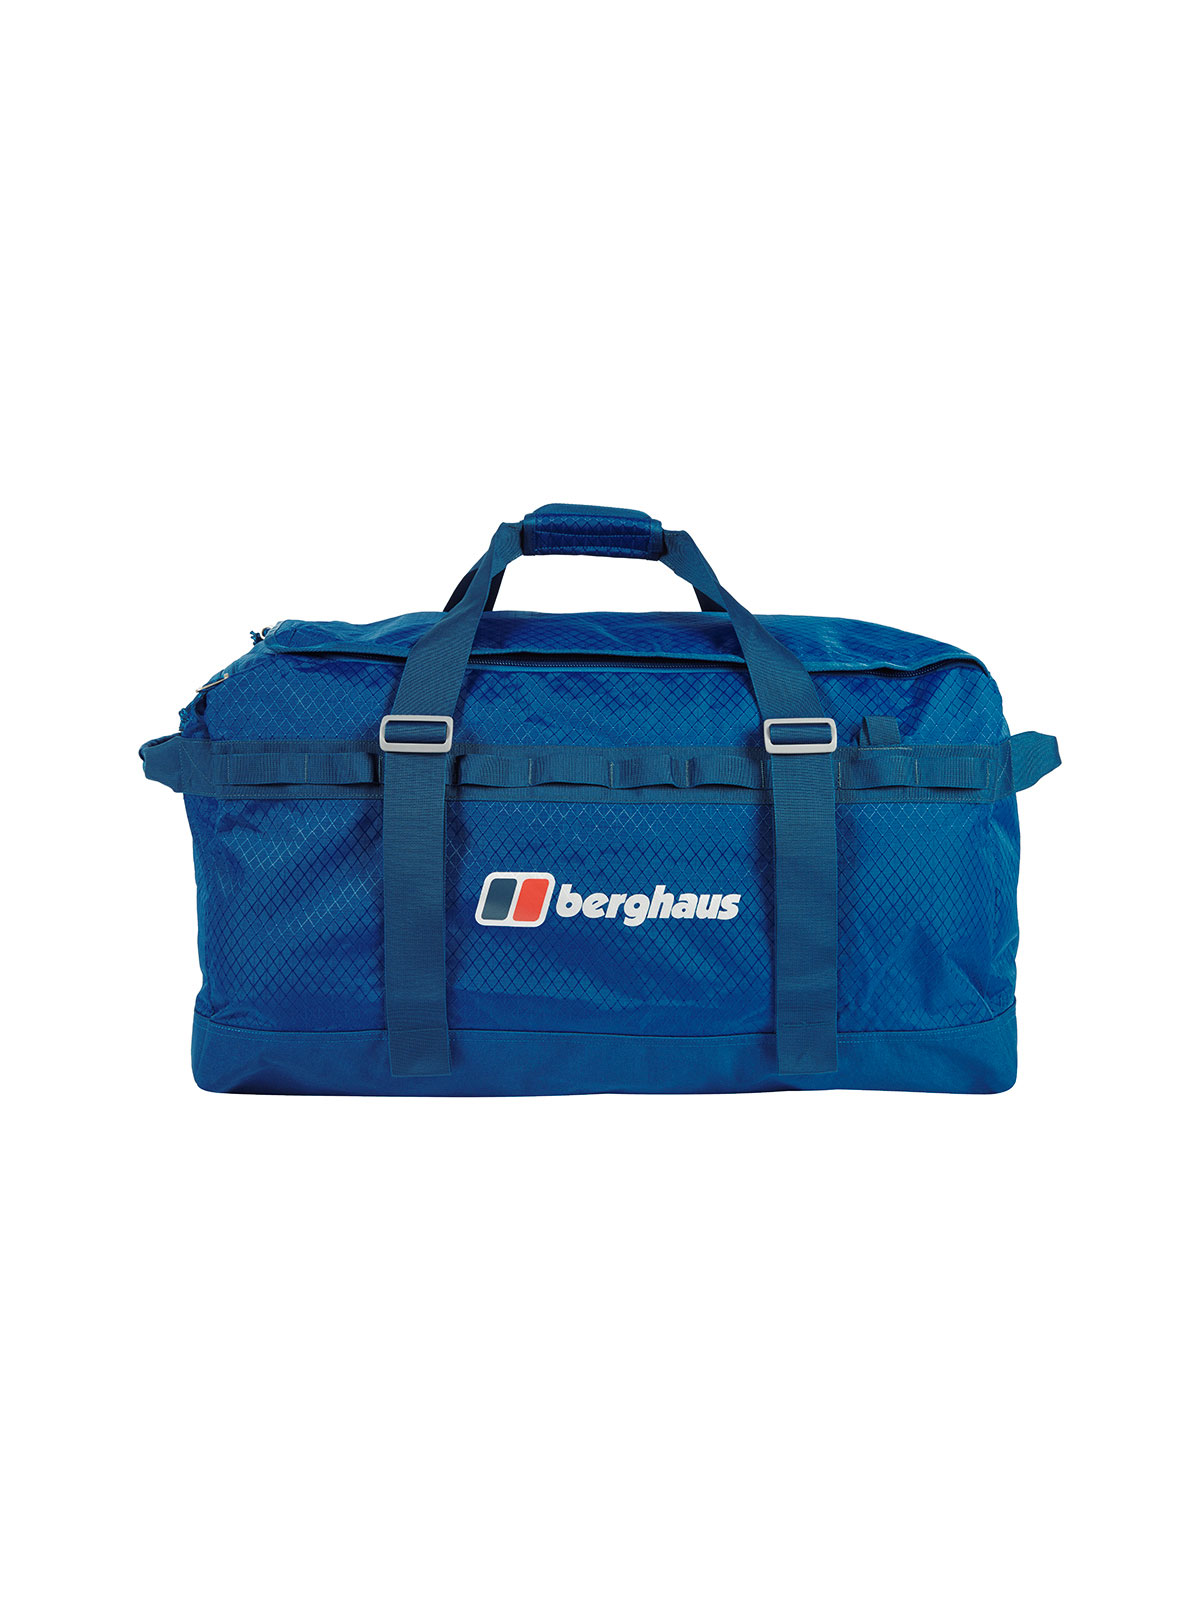 Berghaus Blue Expedition Mule 100 Holdall